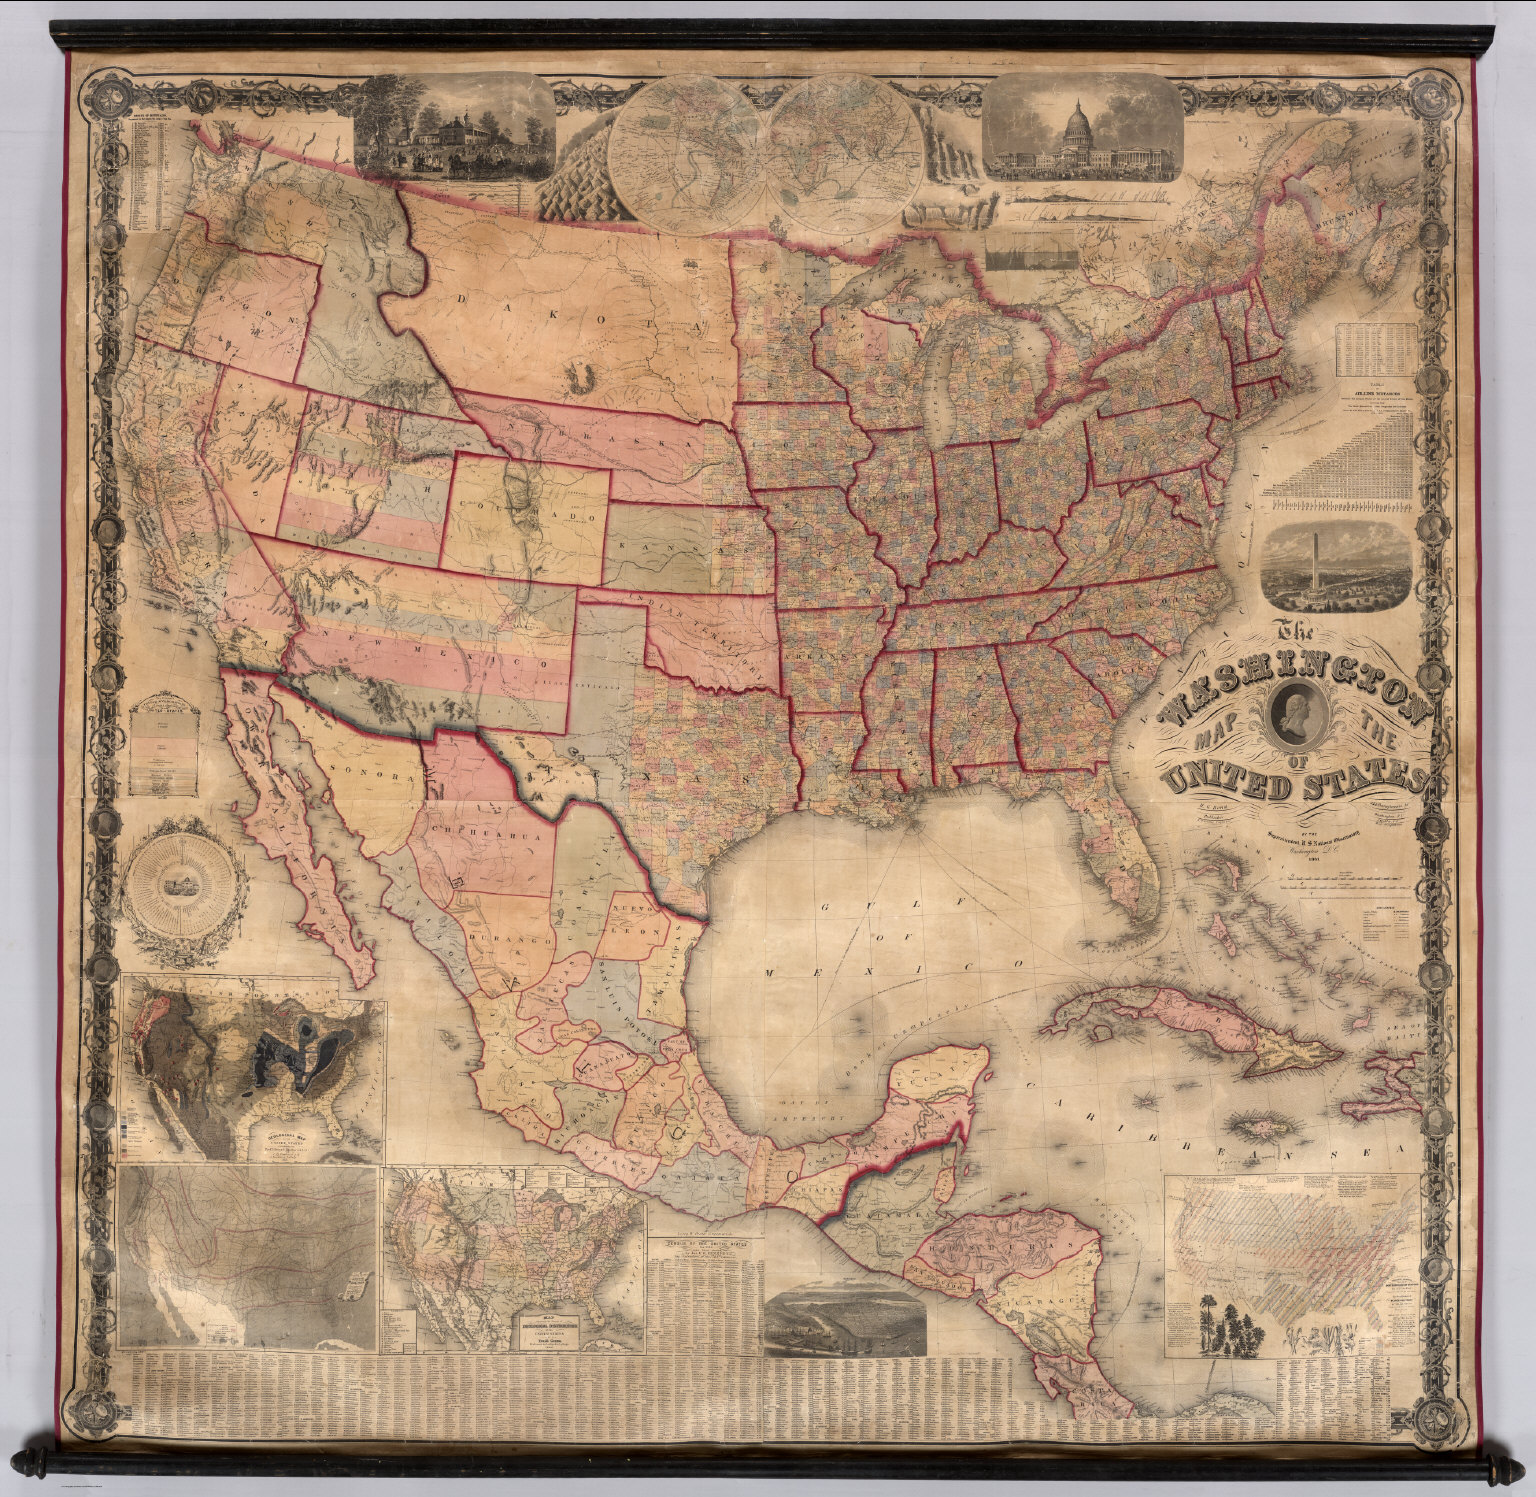 Us Map In 1861.Washington Map Of The United States 1861 1536x1497 Mapporn